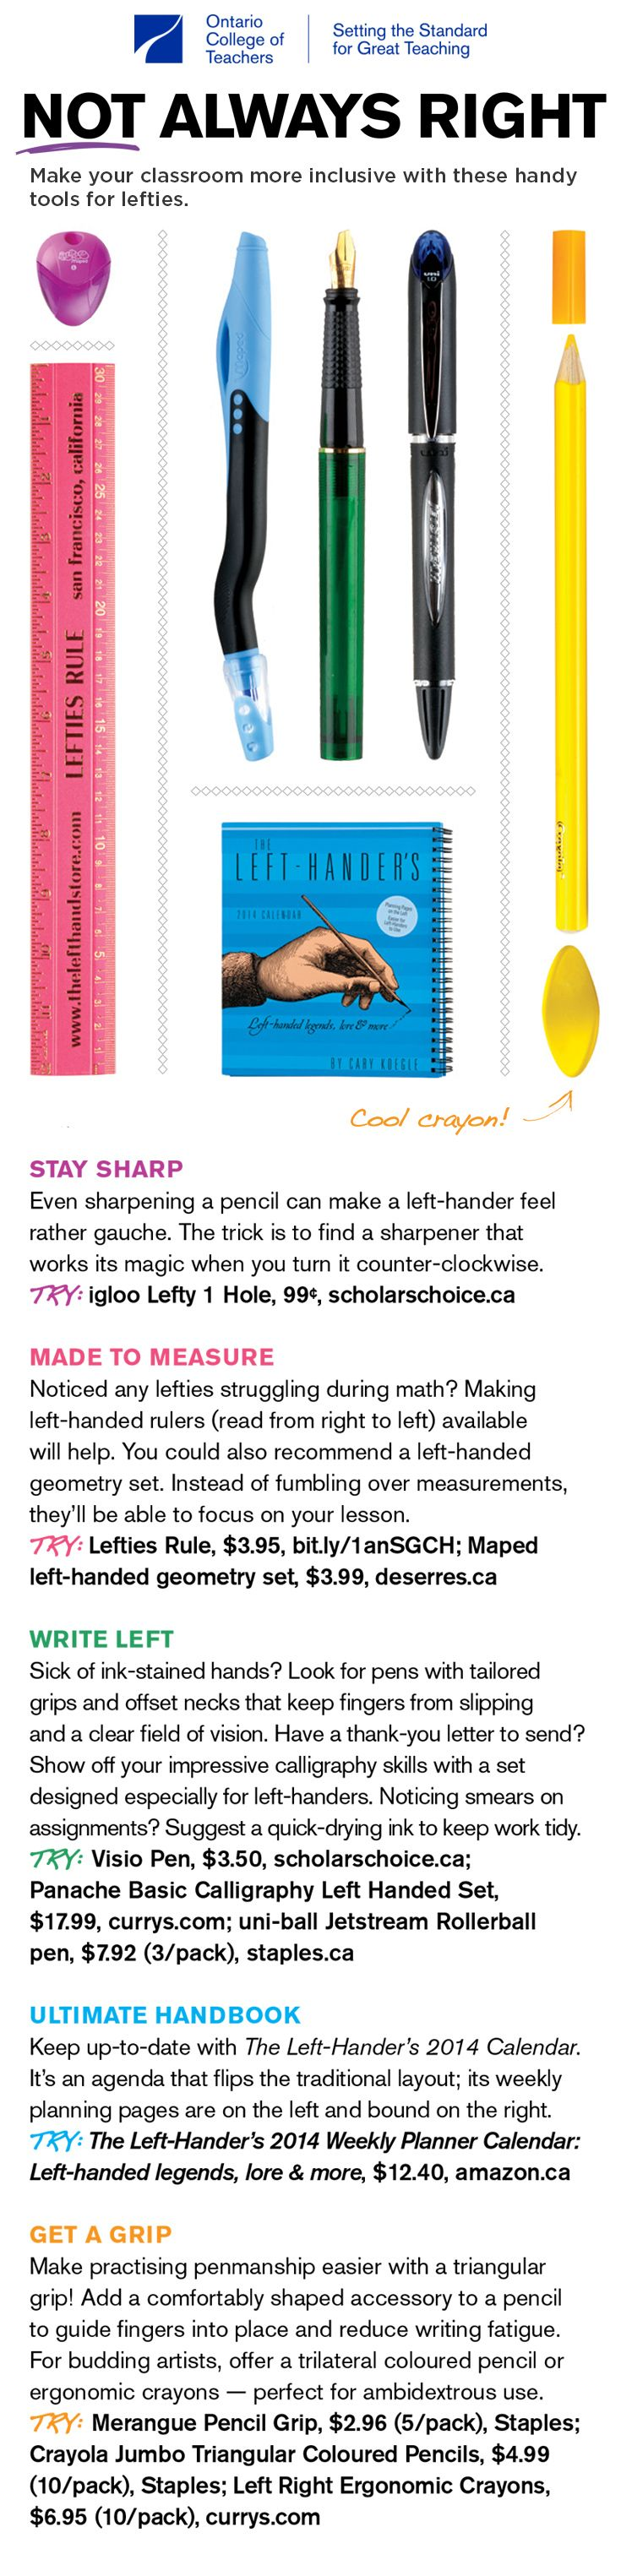 Make your #classroom more inclusive with these handy tools for #lefties. #lefty #lefthanded #lefthandersday #lefthand #teachingtools #learningtools #classroomtools #educational #education #lefthanders